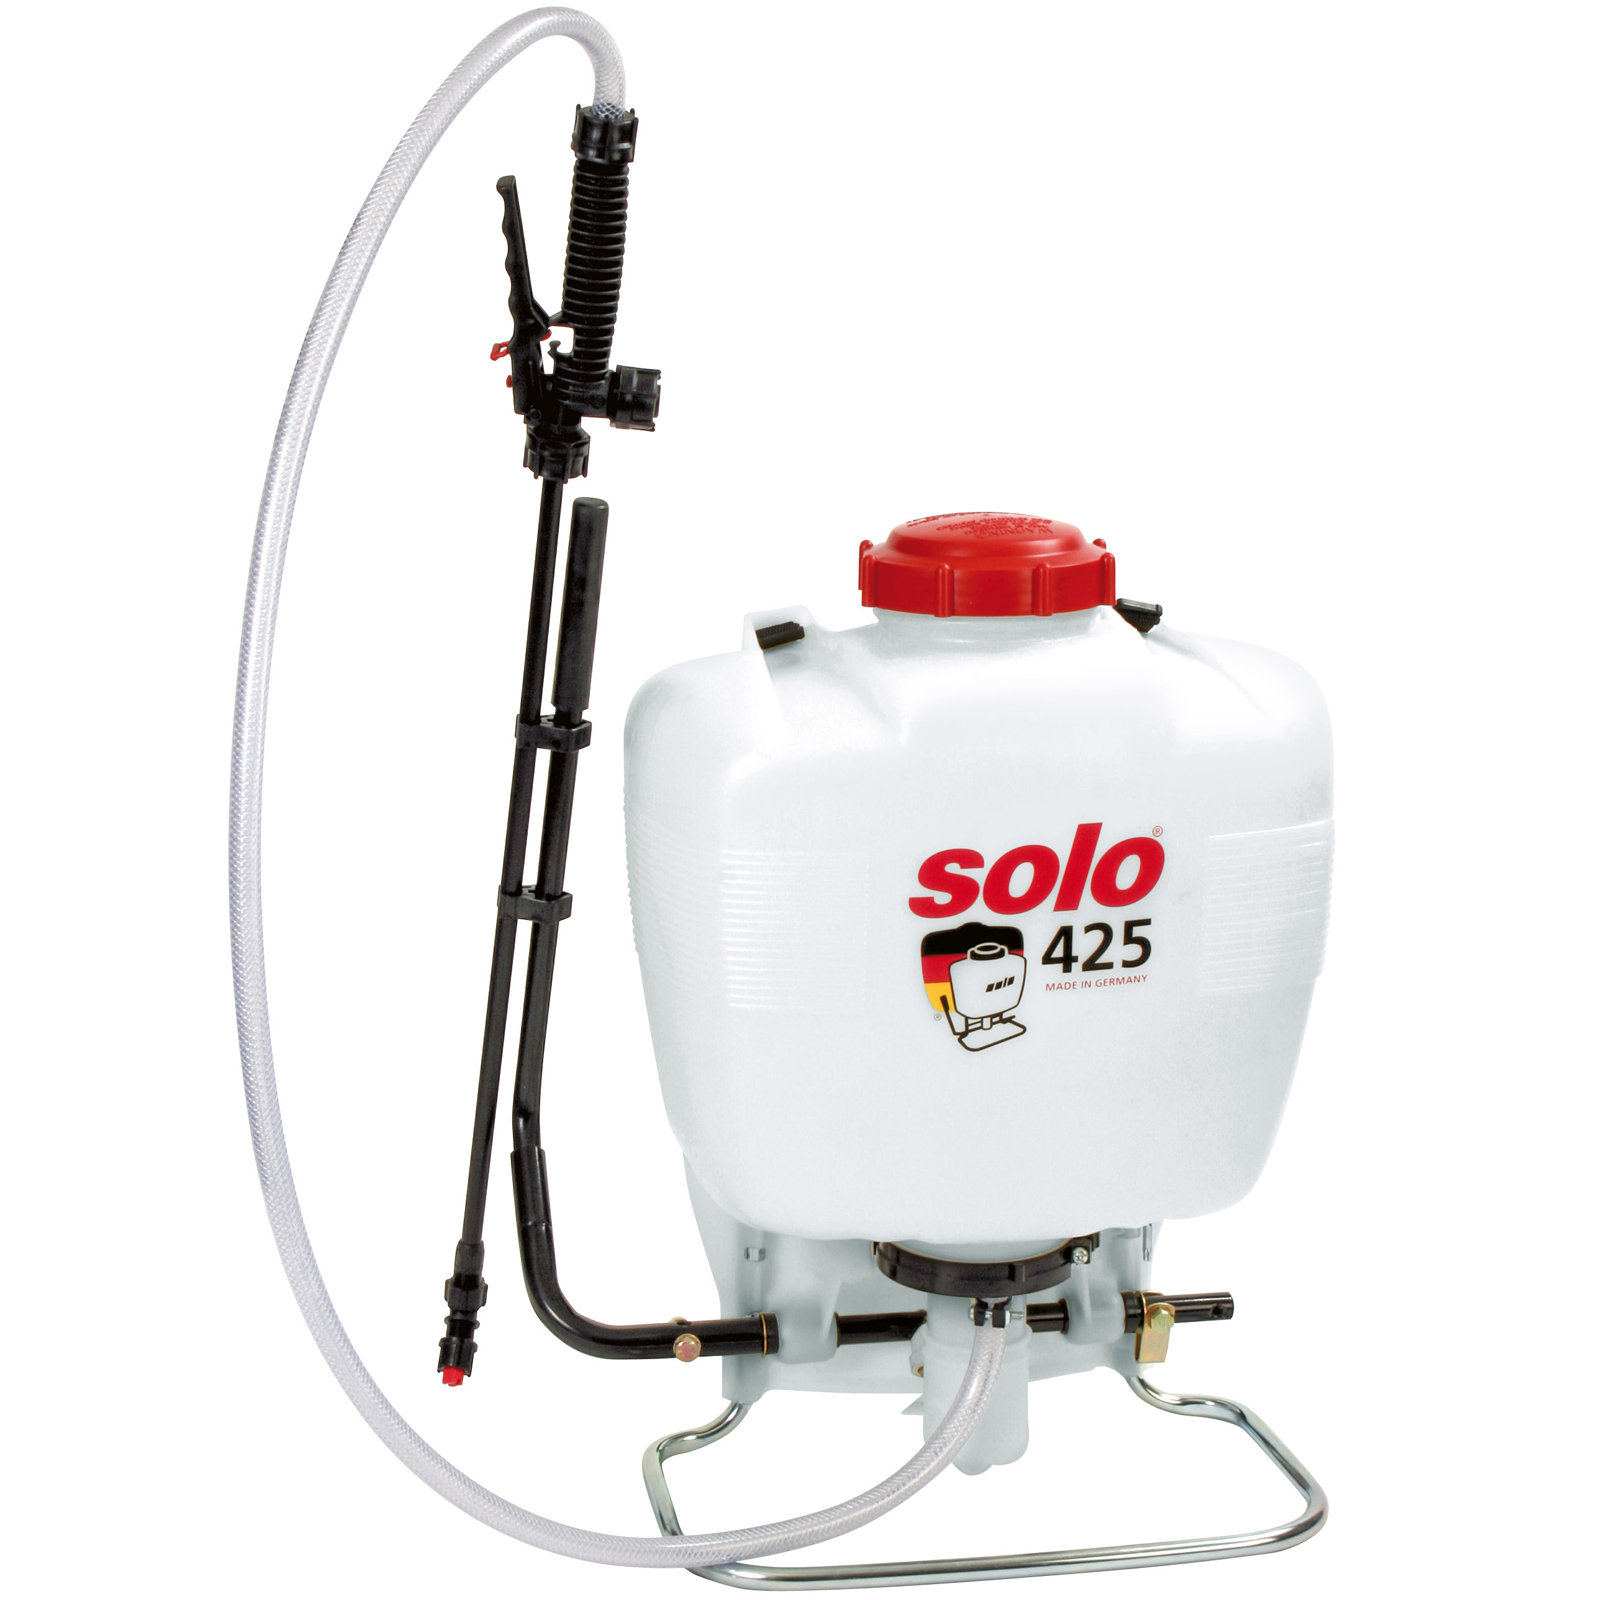 Solo-425P-Pro-Backpack-Chemical-Water-Pressure-Sprayer-15L-15l.jpg